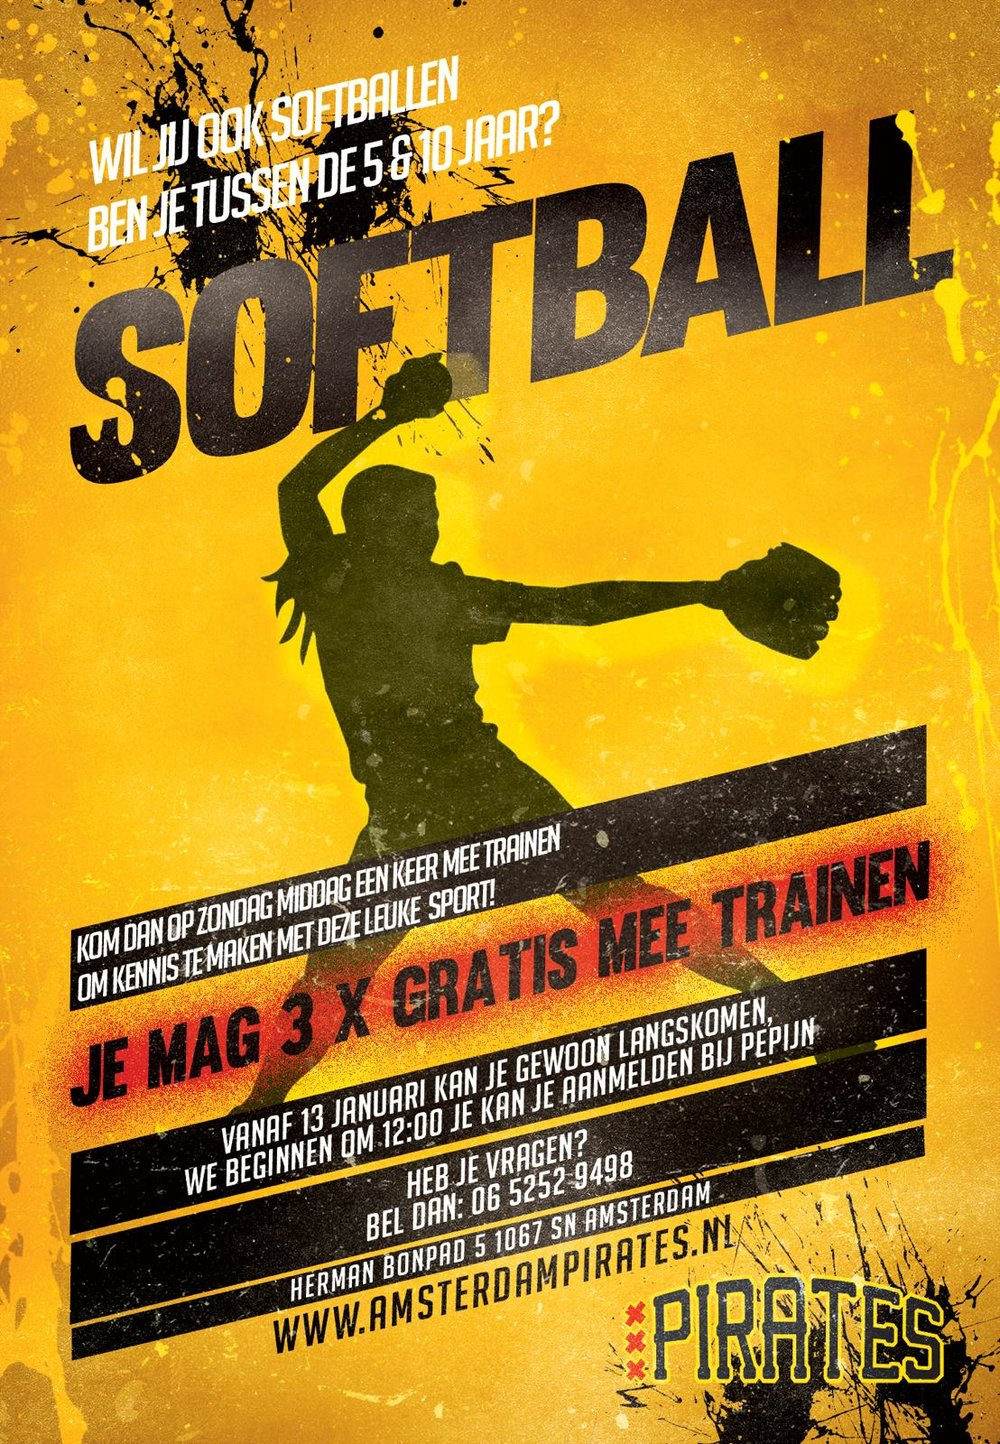 Pirates Softbal Instuif Flyer1.JPG